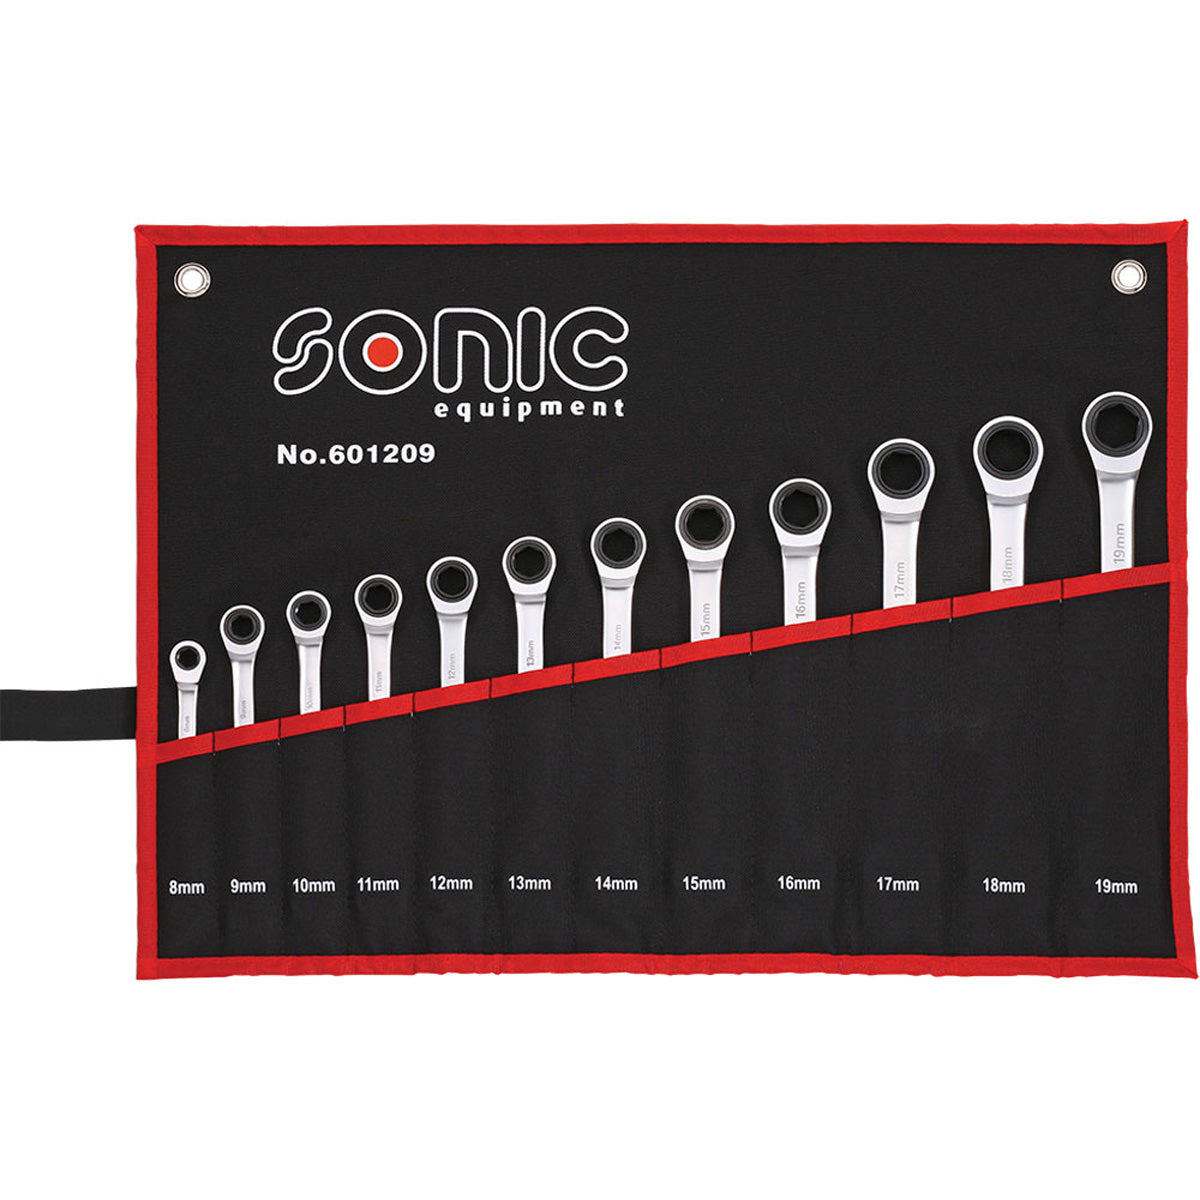 Sonic Tools Flat Ratcheting Wrench 6pt. Set in Pouch, 12pcs Harware Tools - 601209